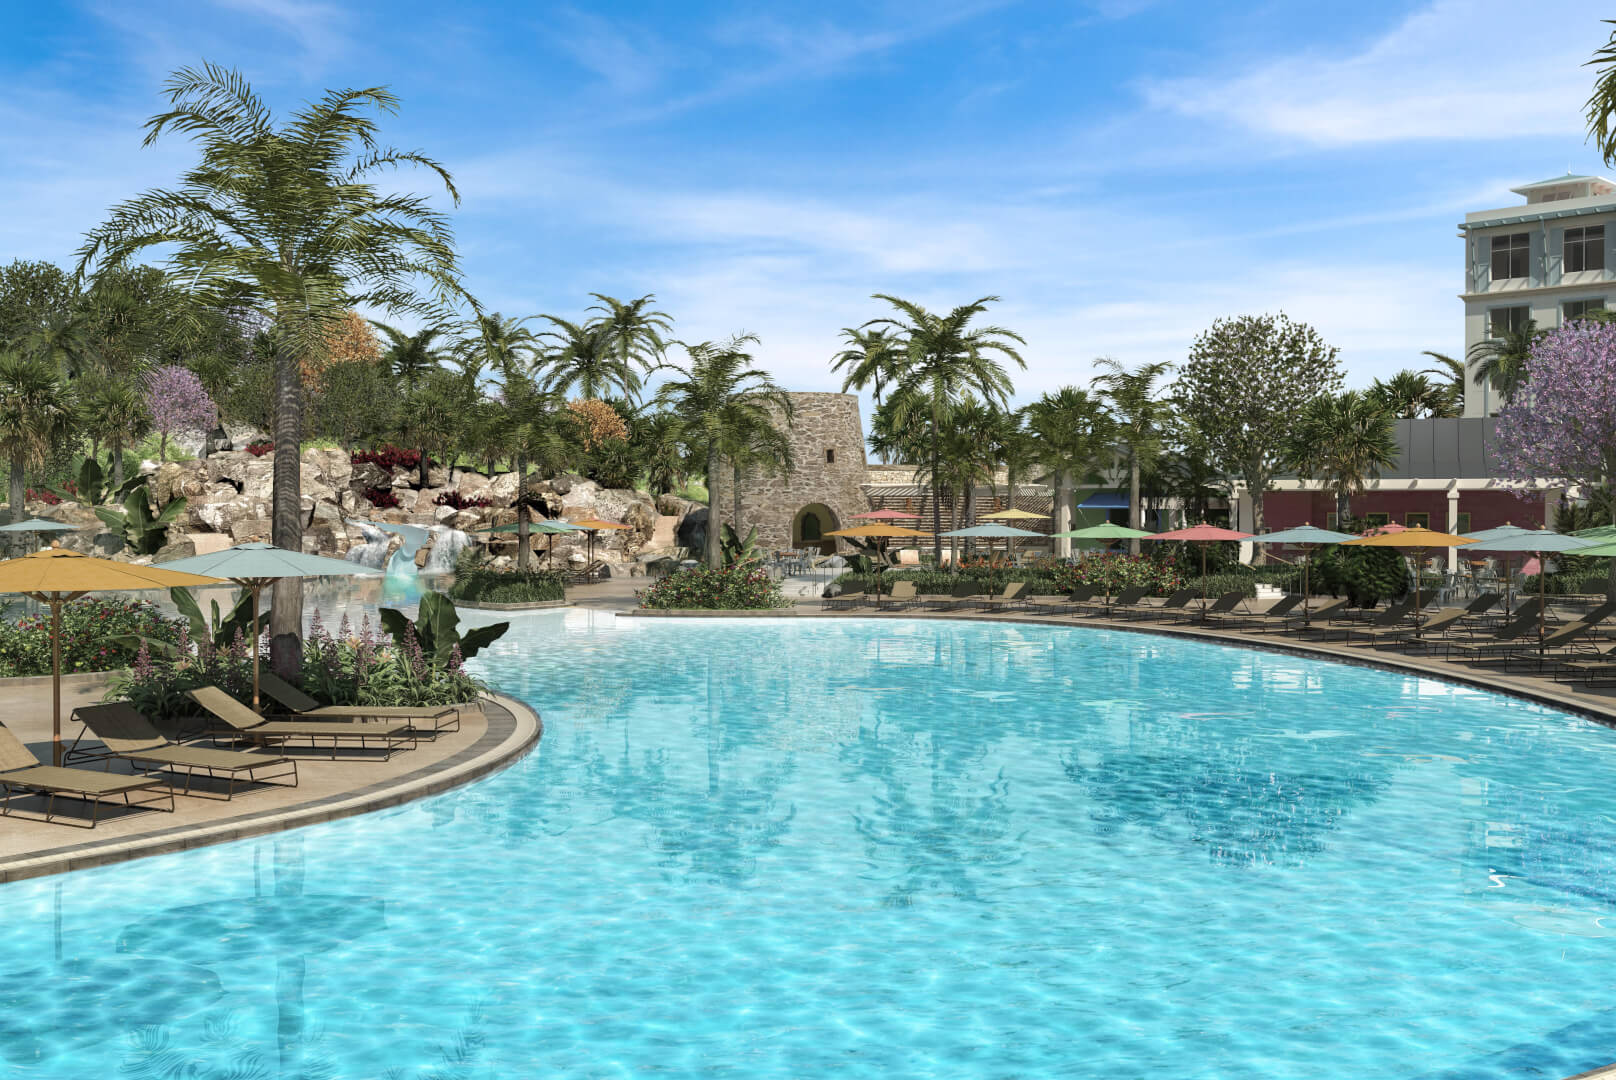 Loews Sapphire Falls Resort to open by July 2016